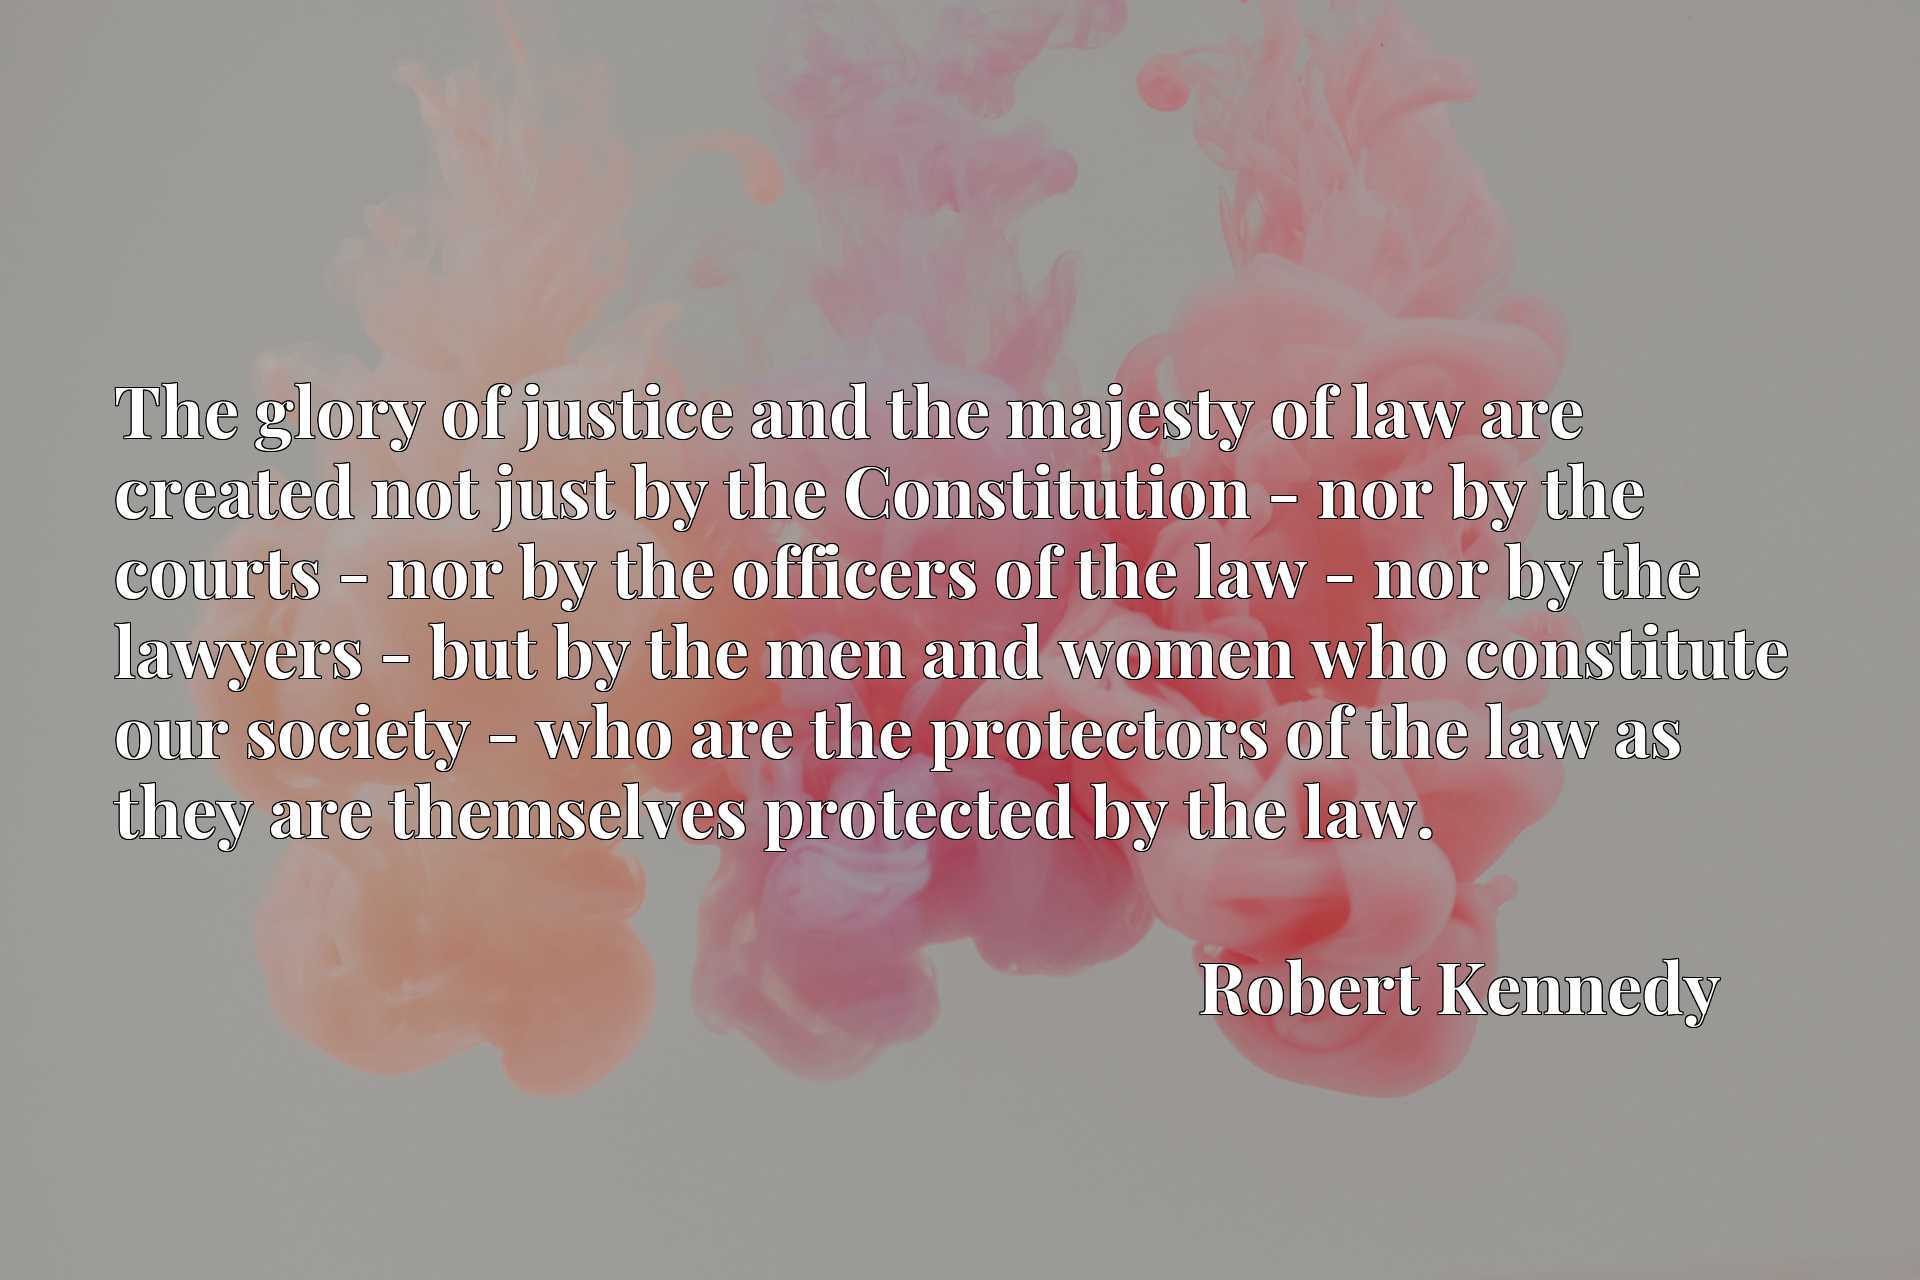 The glory of justice and the majesty of law are created not just by the Constitution - nor by the courts - nor by the officers of the law - nor by the lawyers - but by the men and women who constitute our society - who are the protectors of the law as they are themselves protected by the law.